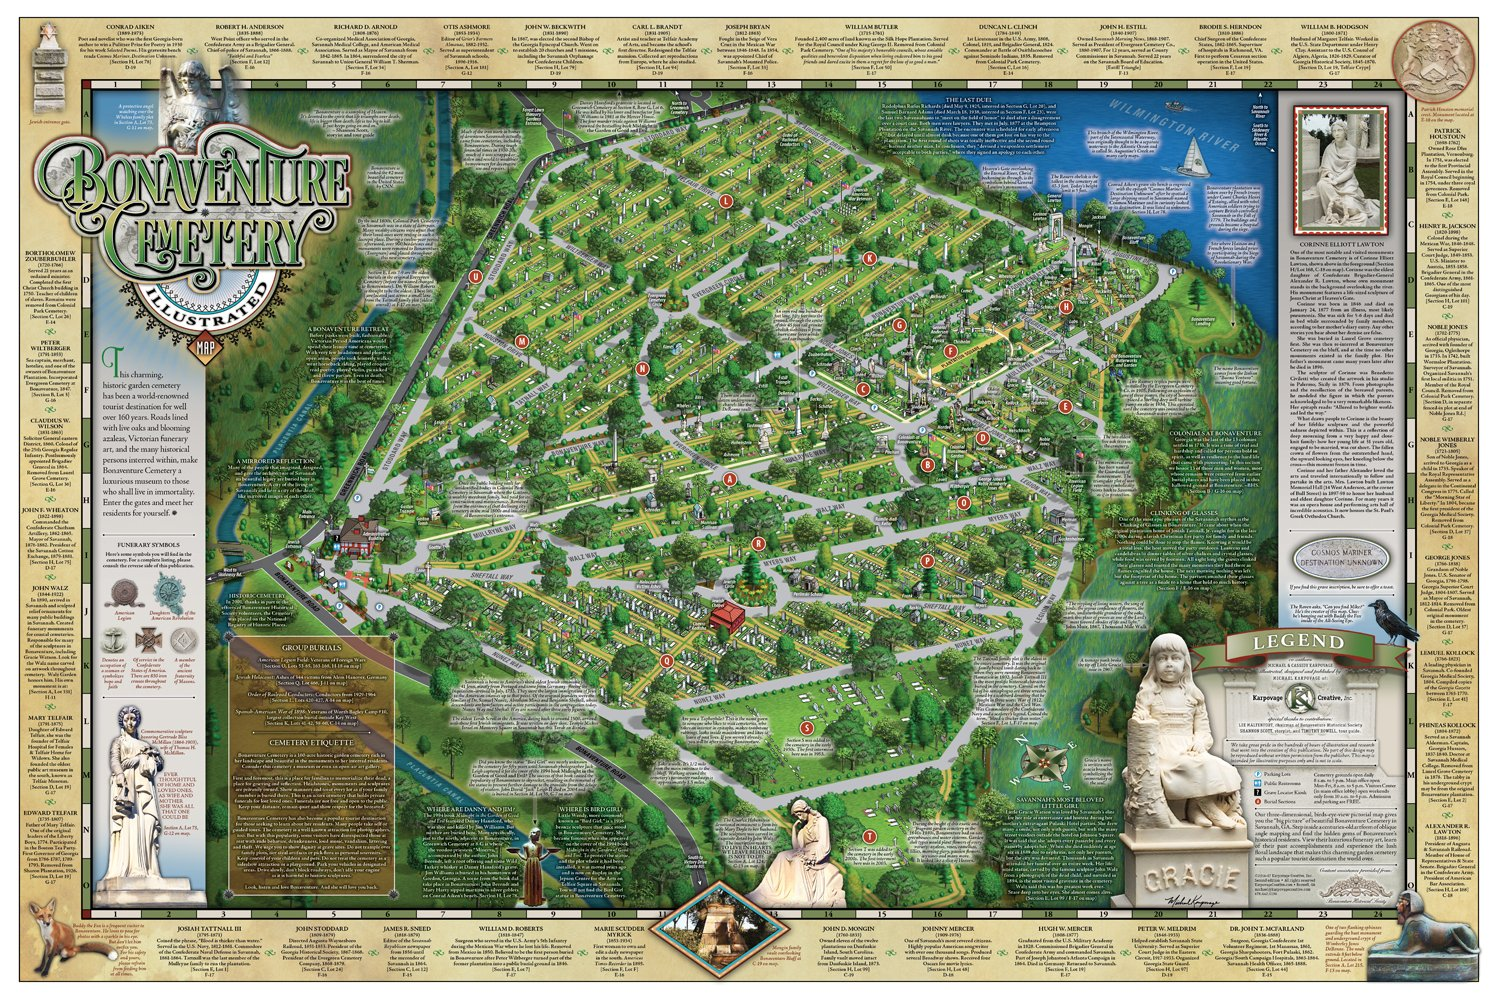 Bonaventure Cemetery Map Bonaventure Cemetery Illustrated Map: Michael Karpovage, Cassidy